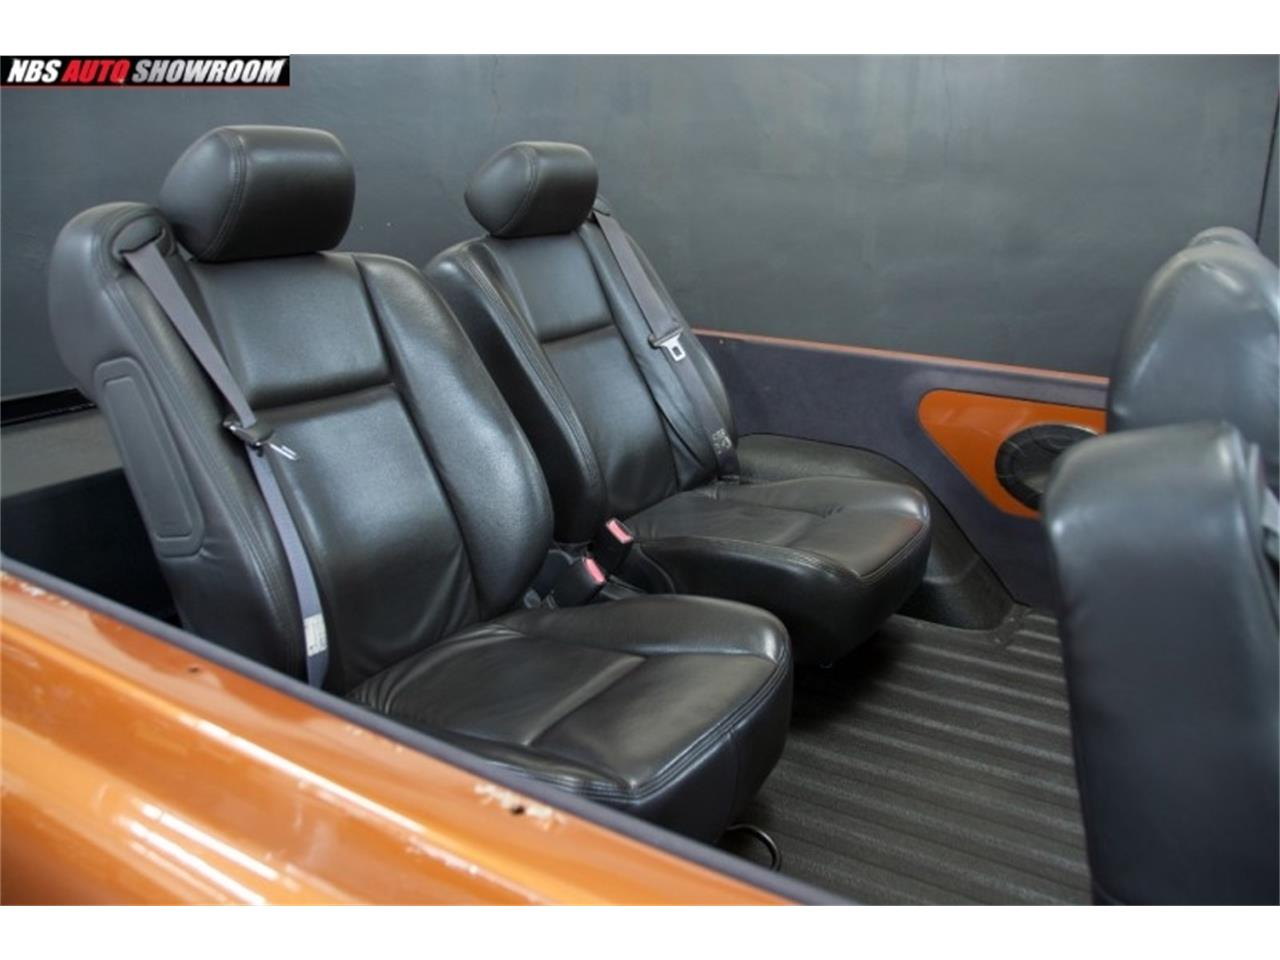 Large Picture of Classic 1970 Chevrolet Blazer located in California Offered by NBS Auto Showroom - PR1D